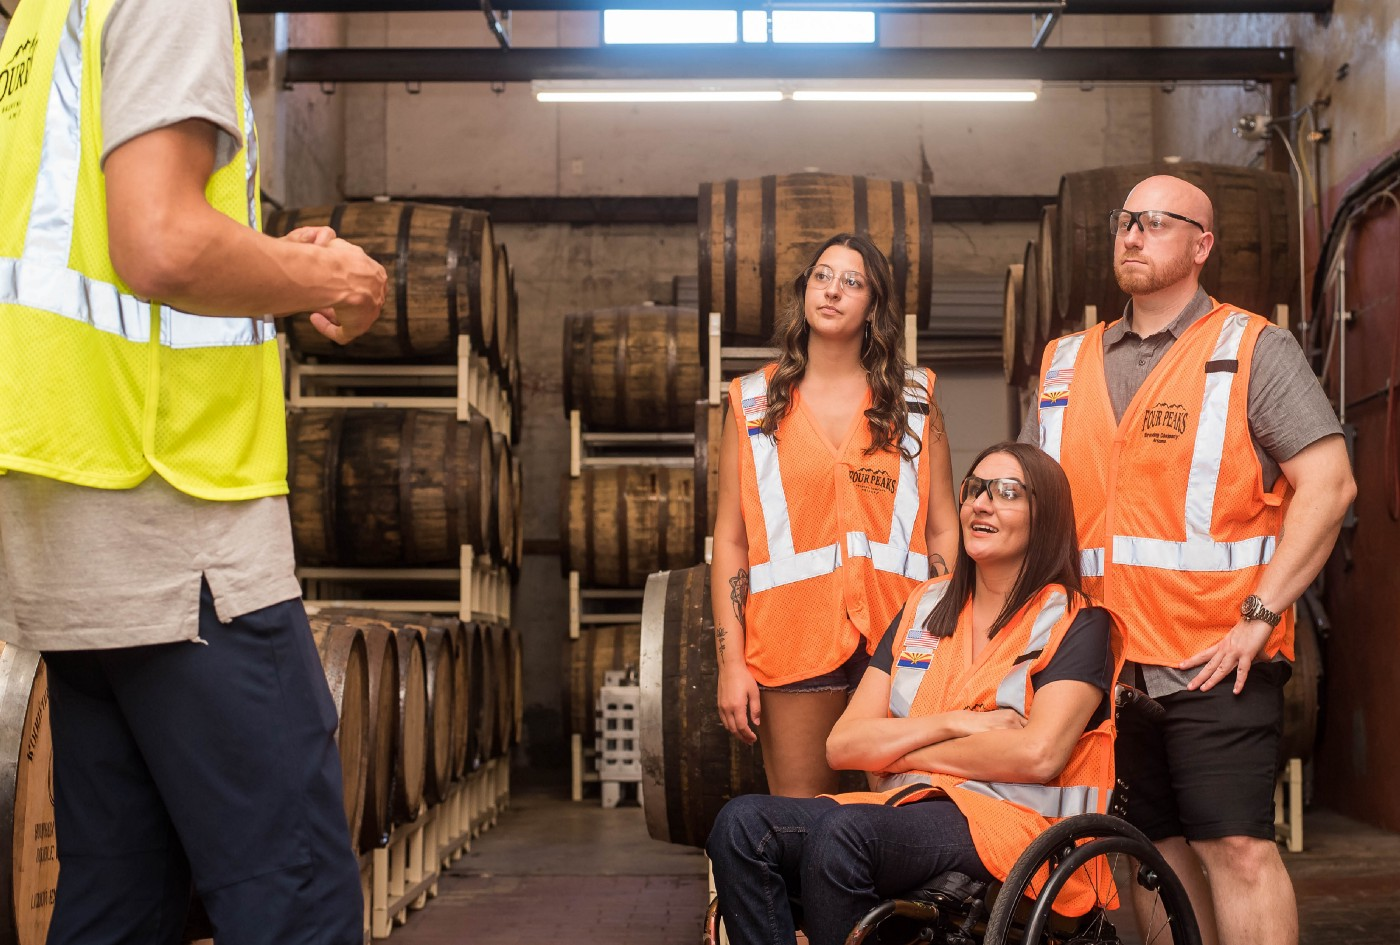 Four individuals in a warehouse setting wearing brightly colored safety vests, one of them a woman in a wheelchair